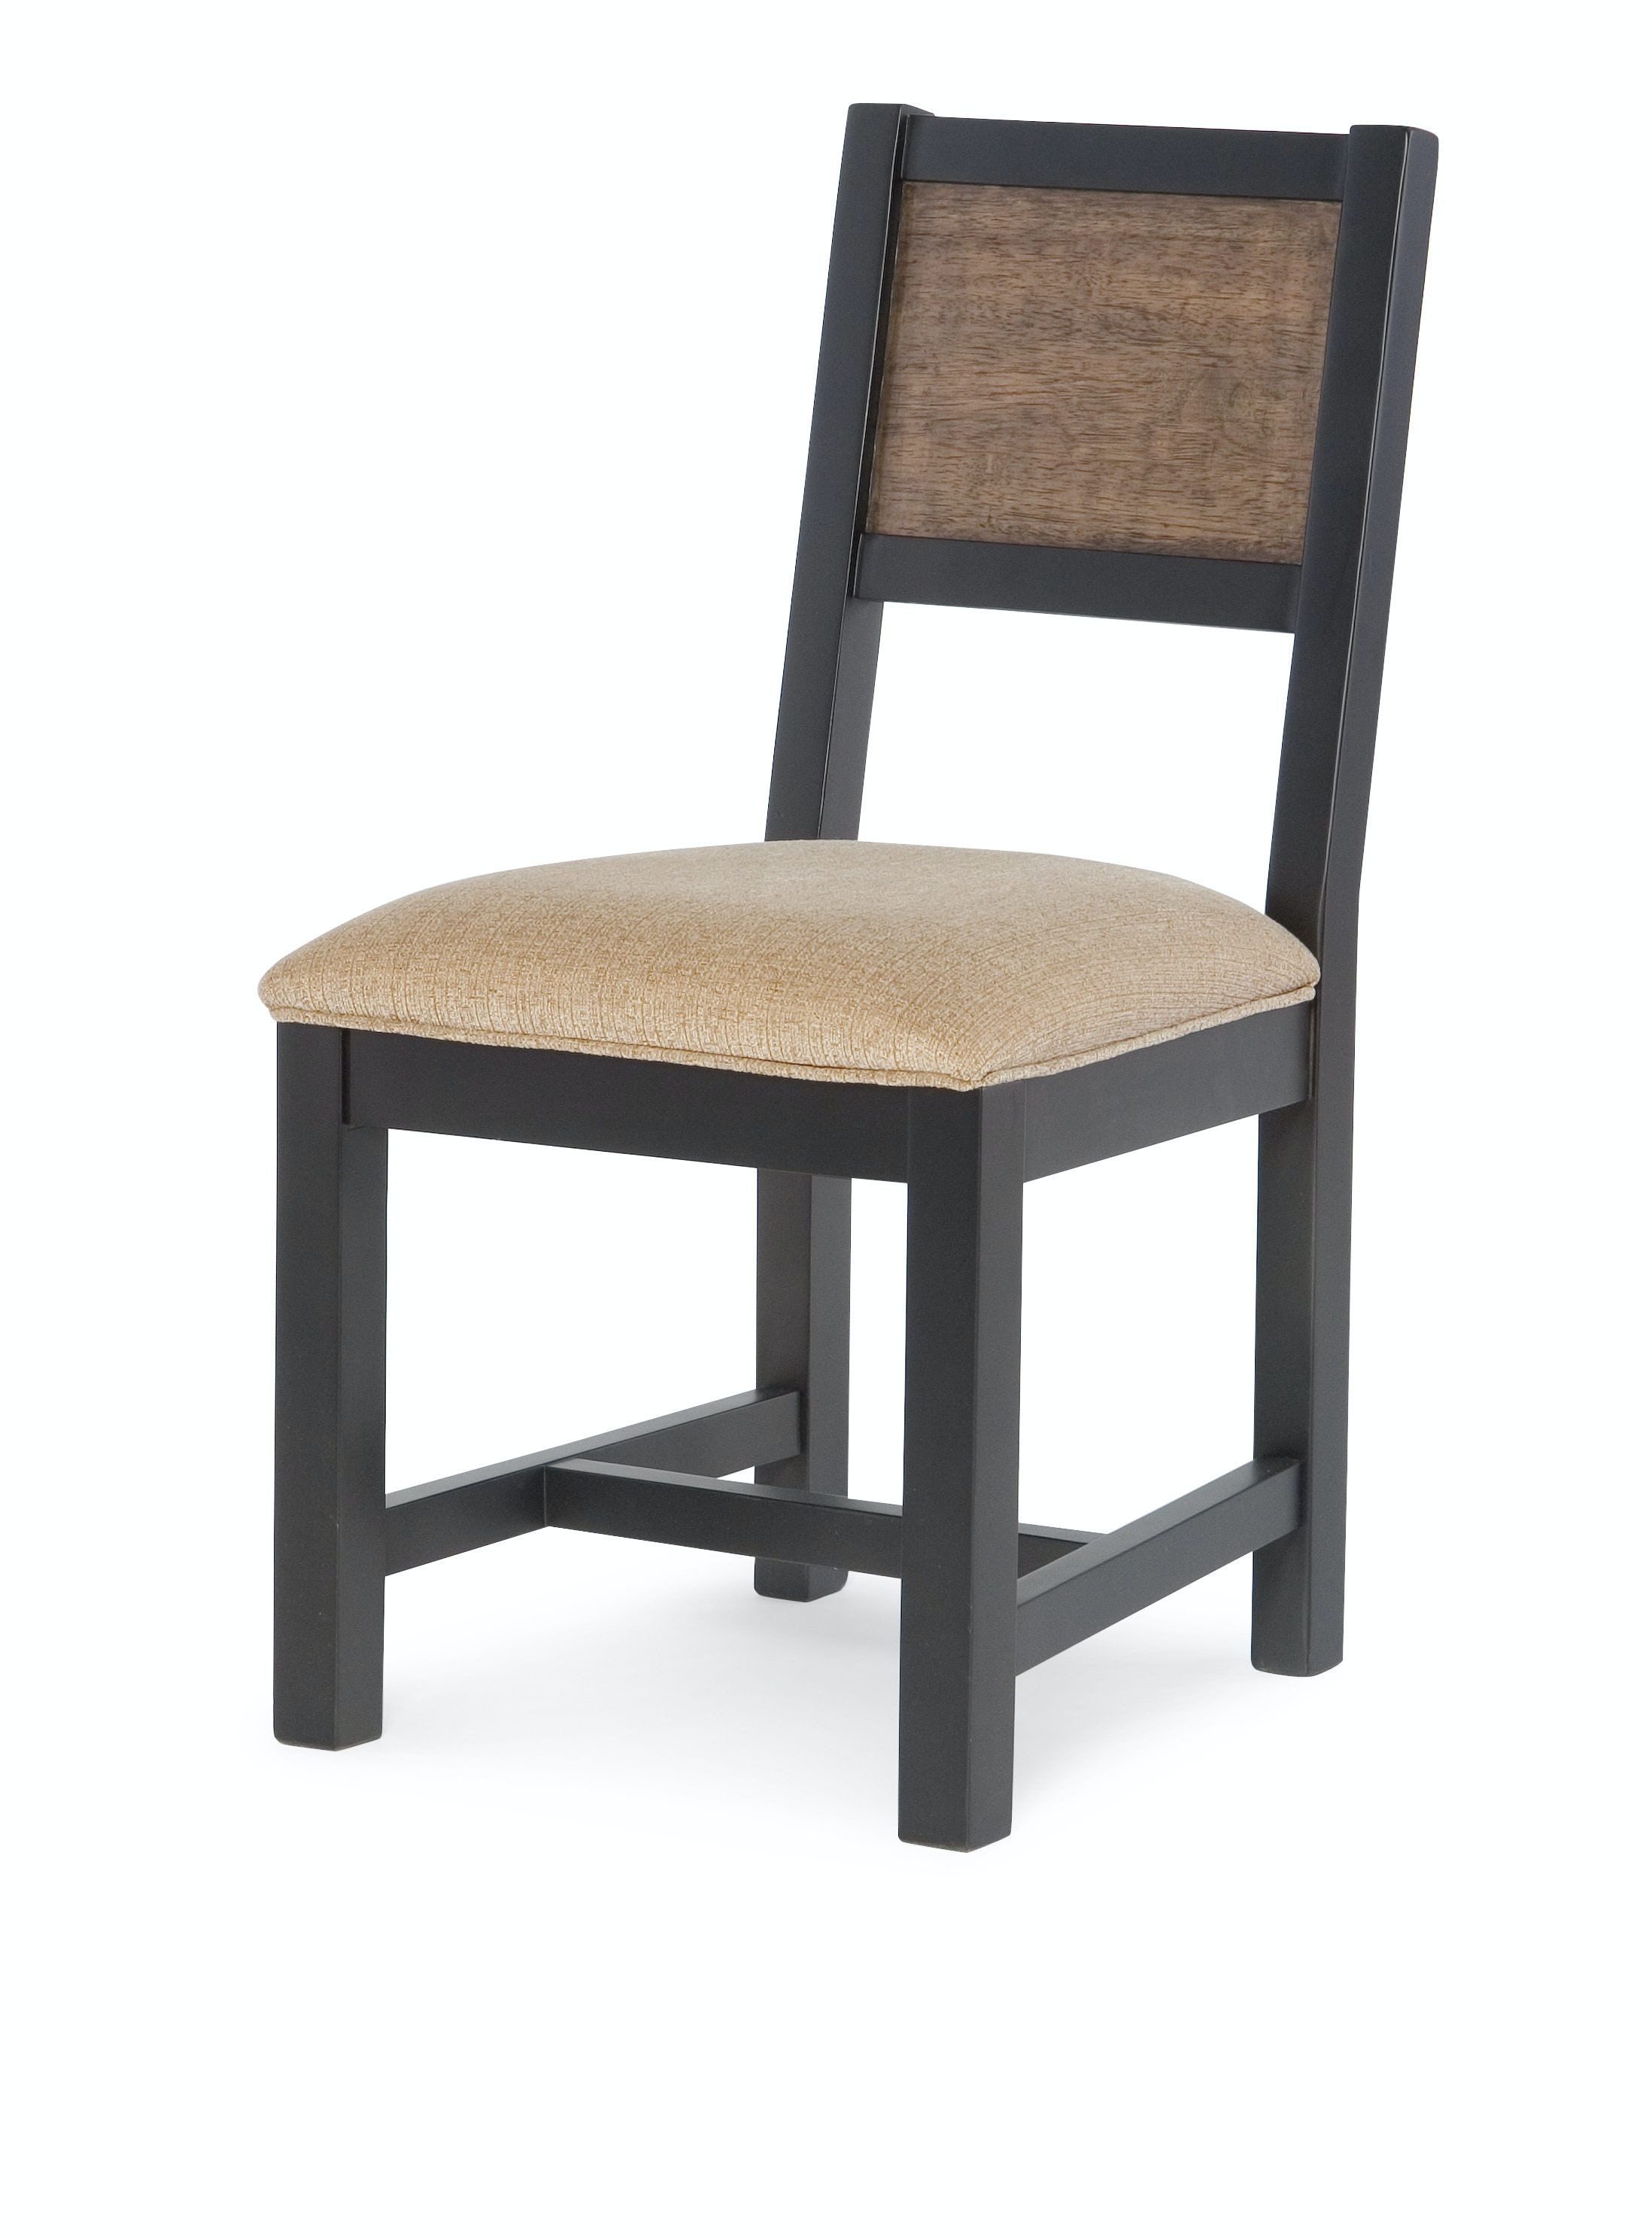 kids chair desk unusual accent legacy classic youth 5900 640 kd shofer